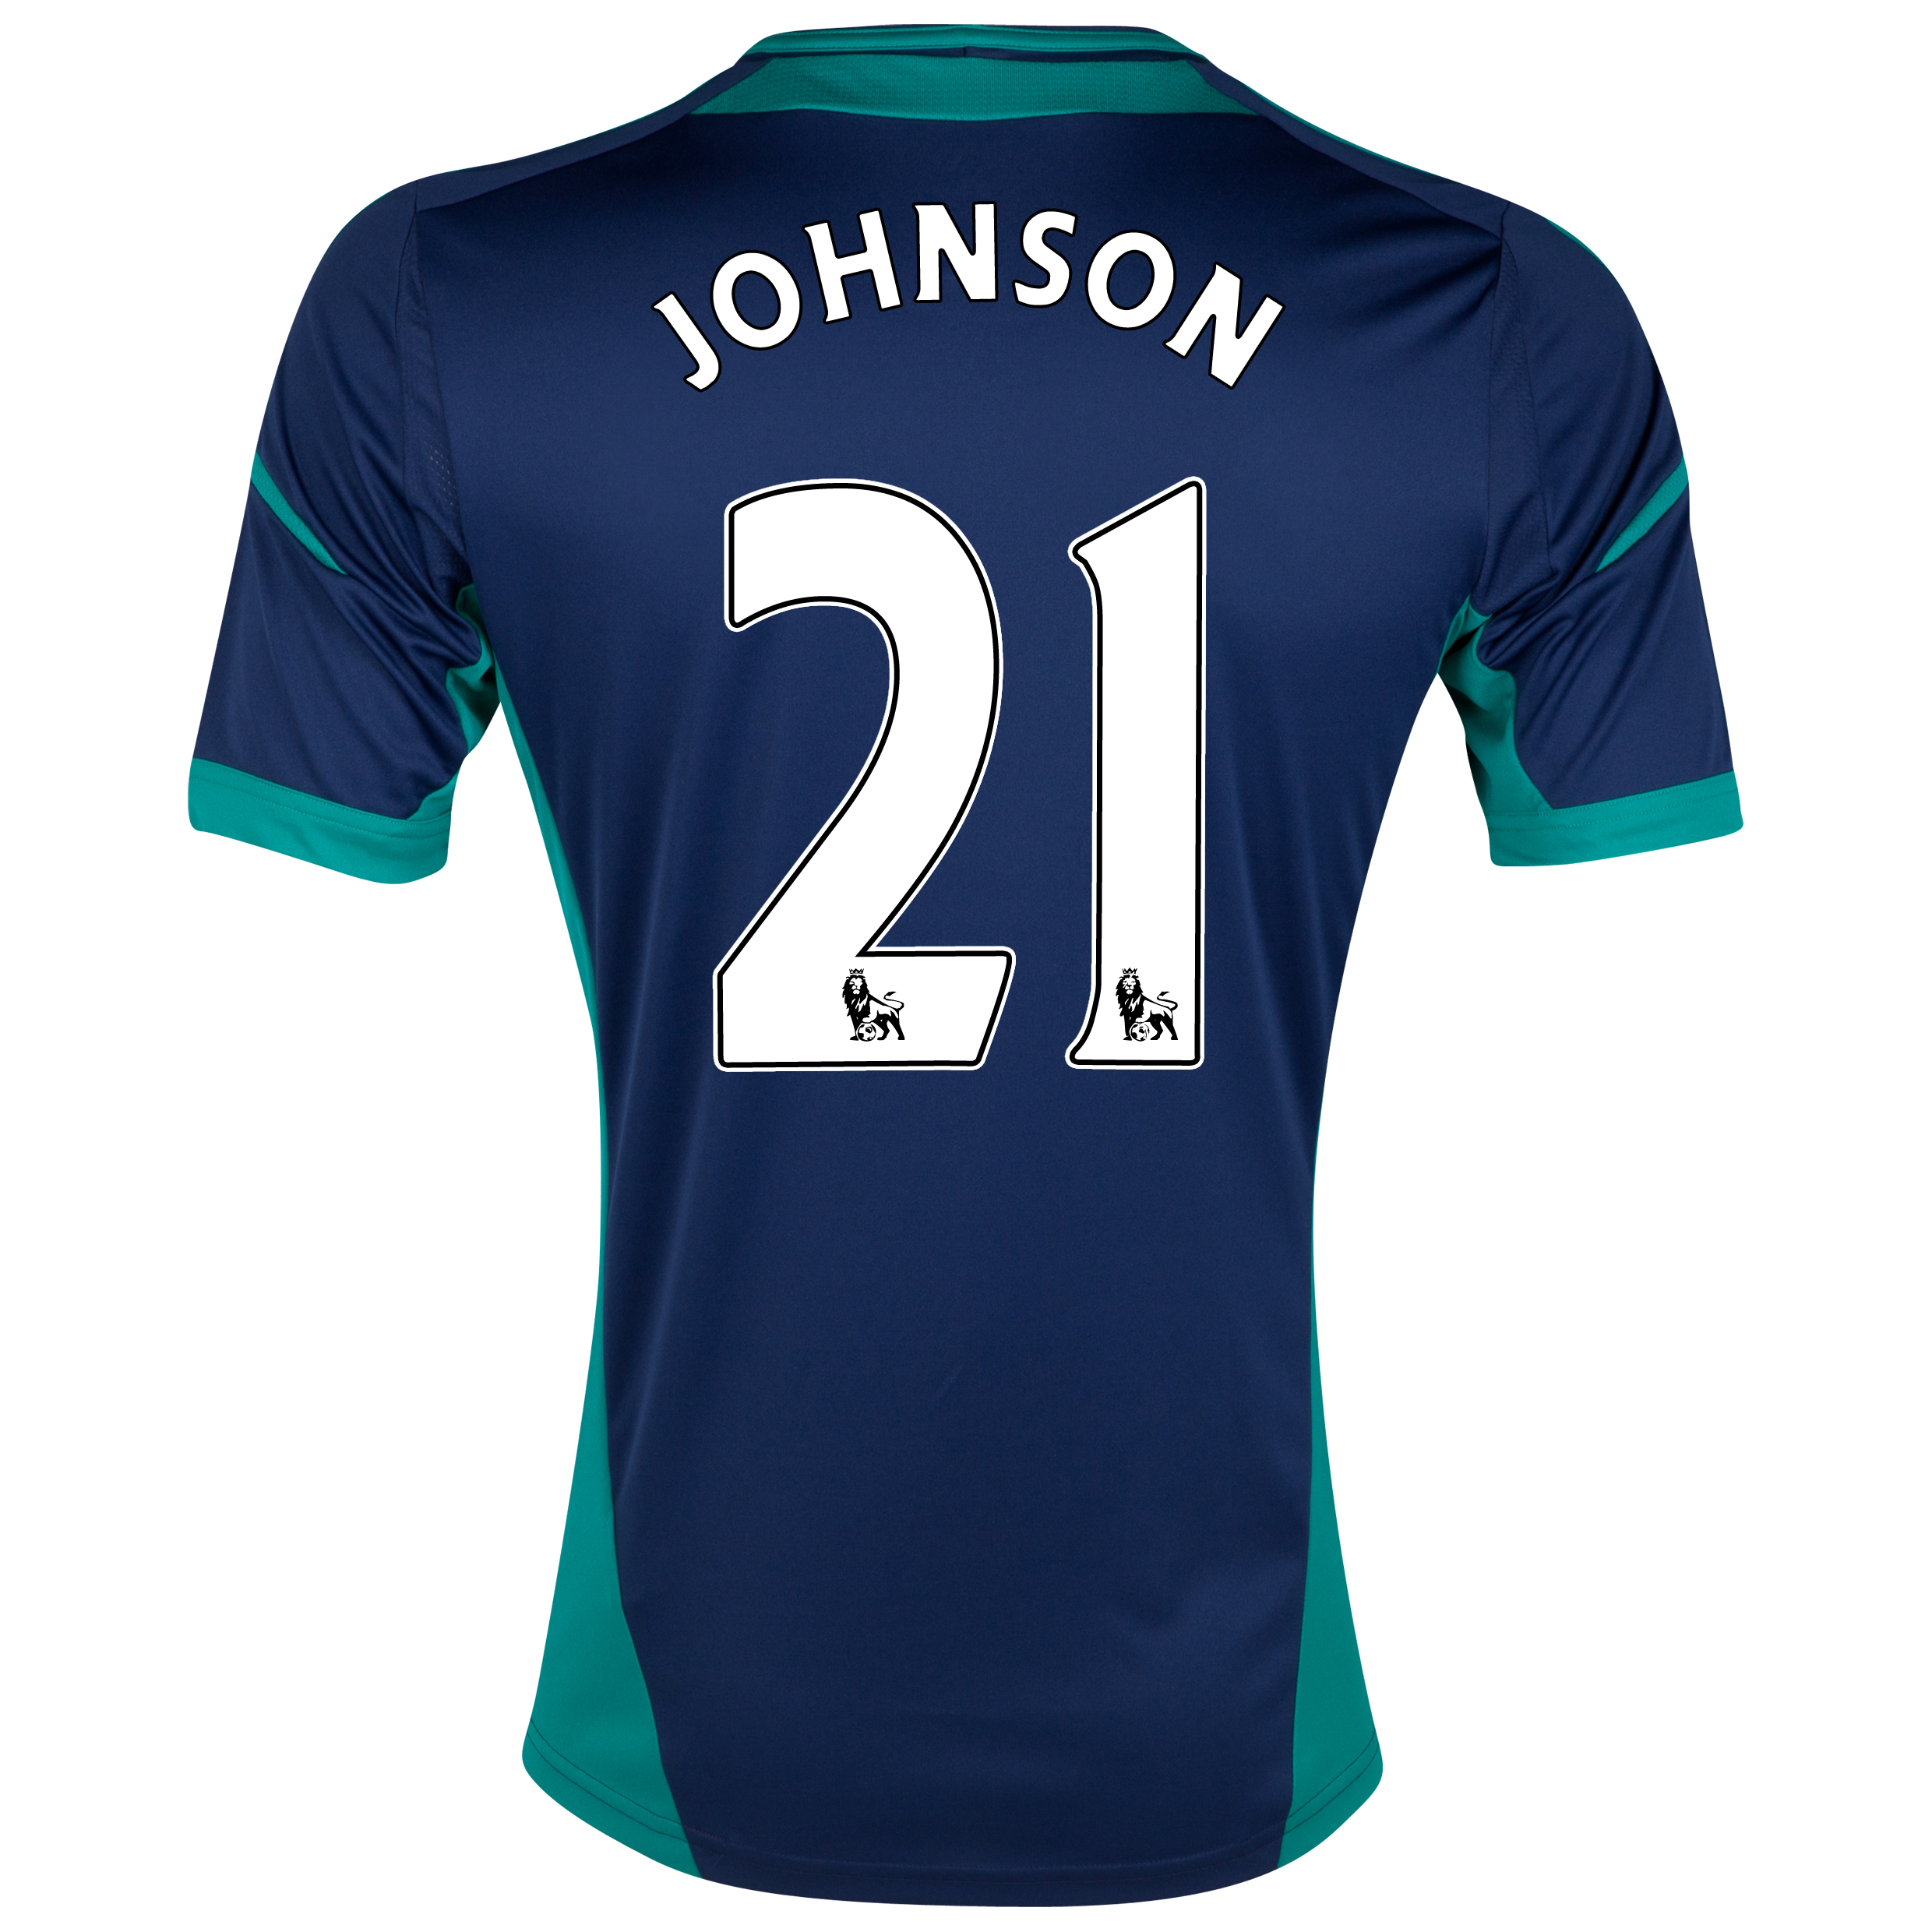 Sunderland Away Shirt 2012/13 with Johnson 21 printing